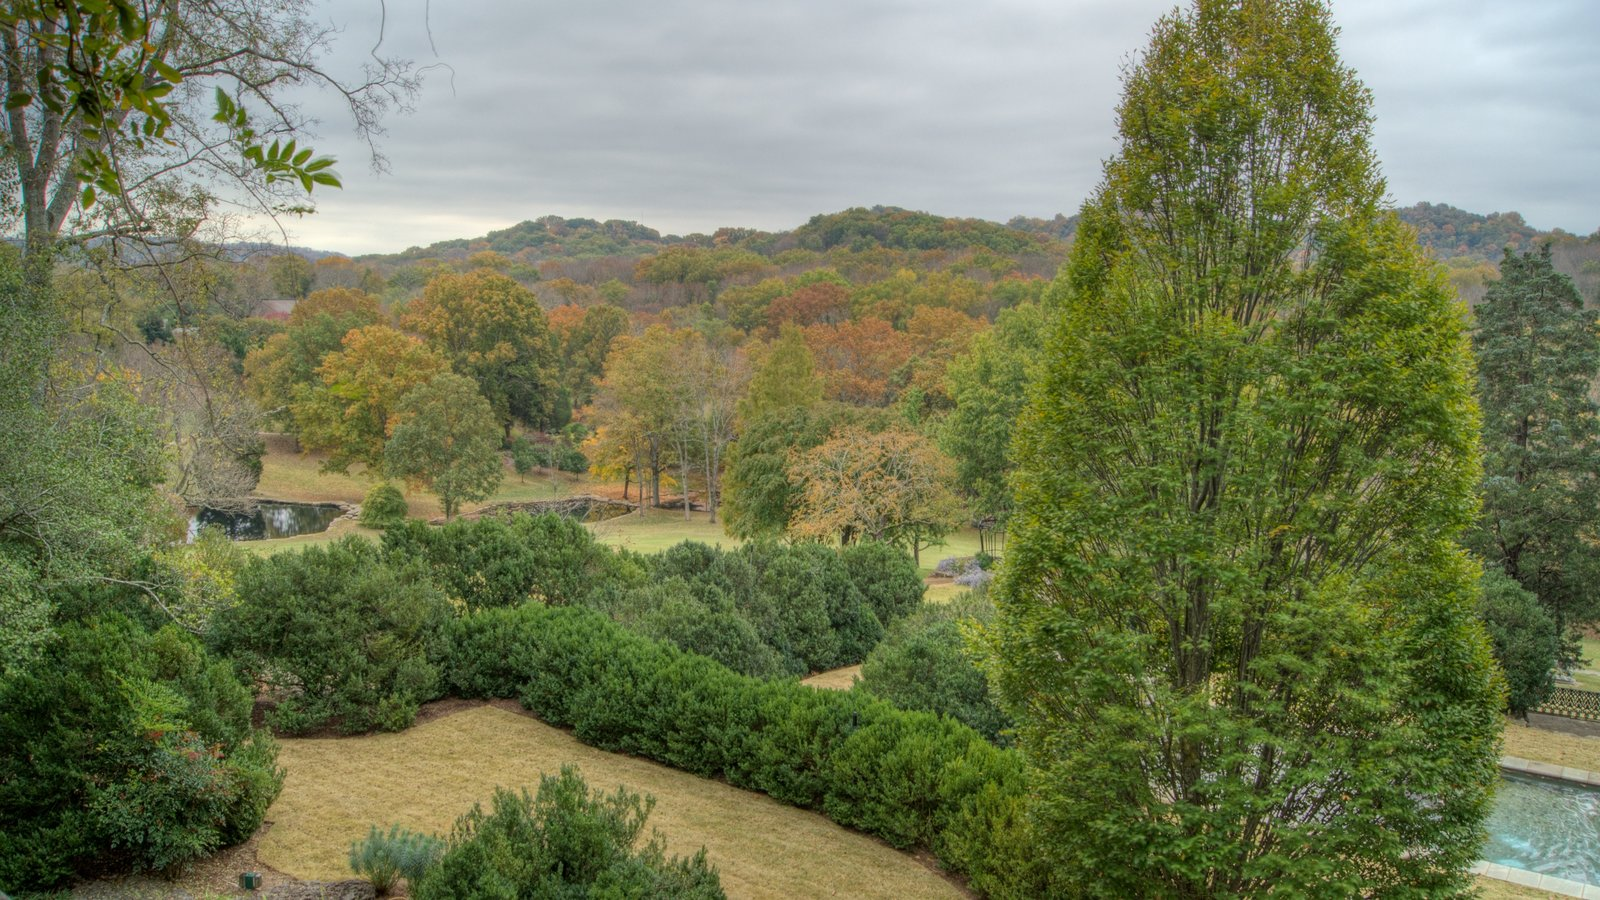 Cheekwood Botanical Gardens and Museum of Art featuring a garden, forests and landscape views